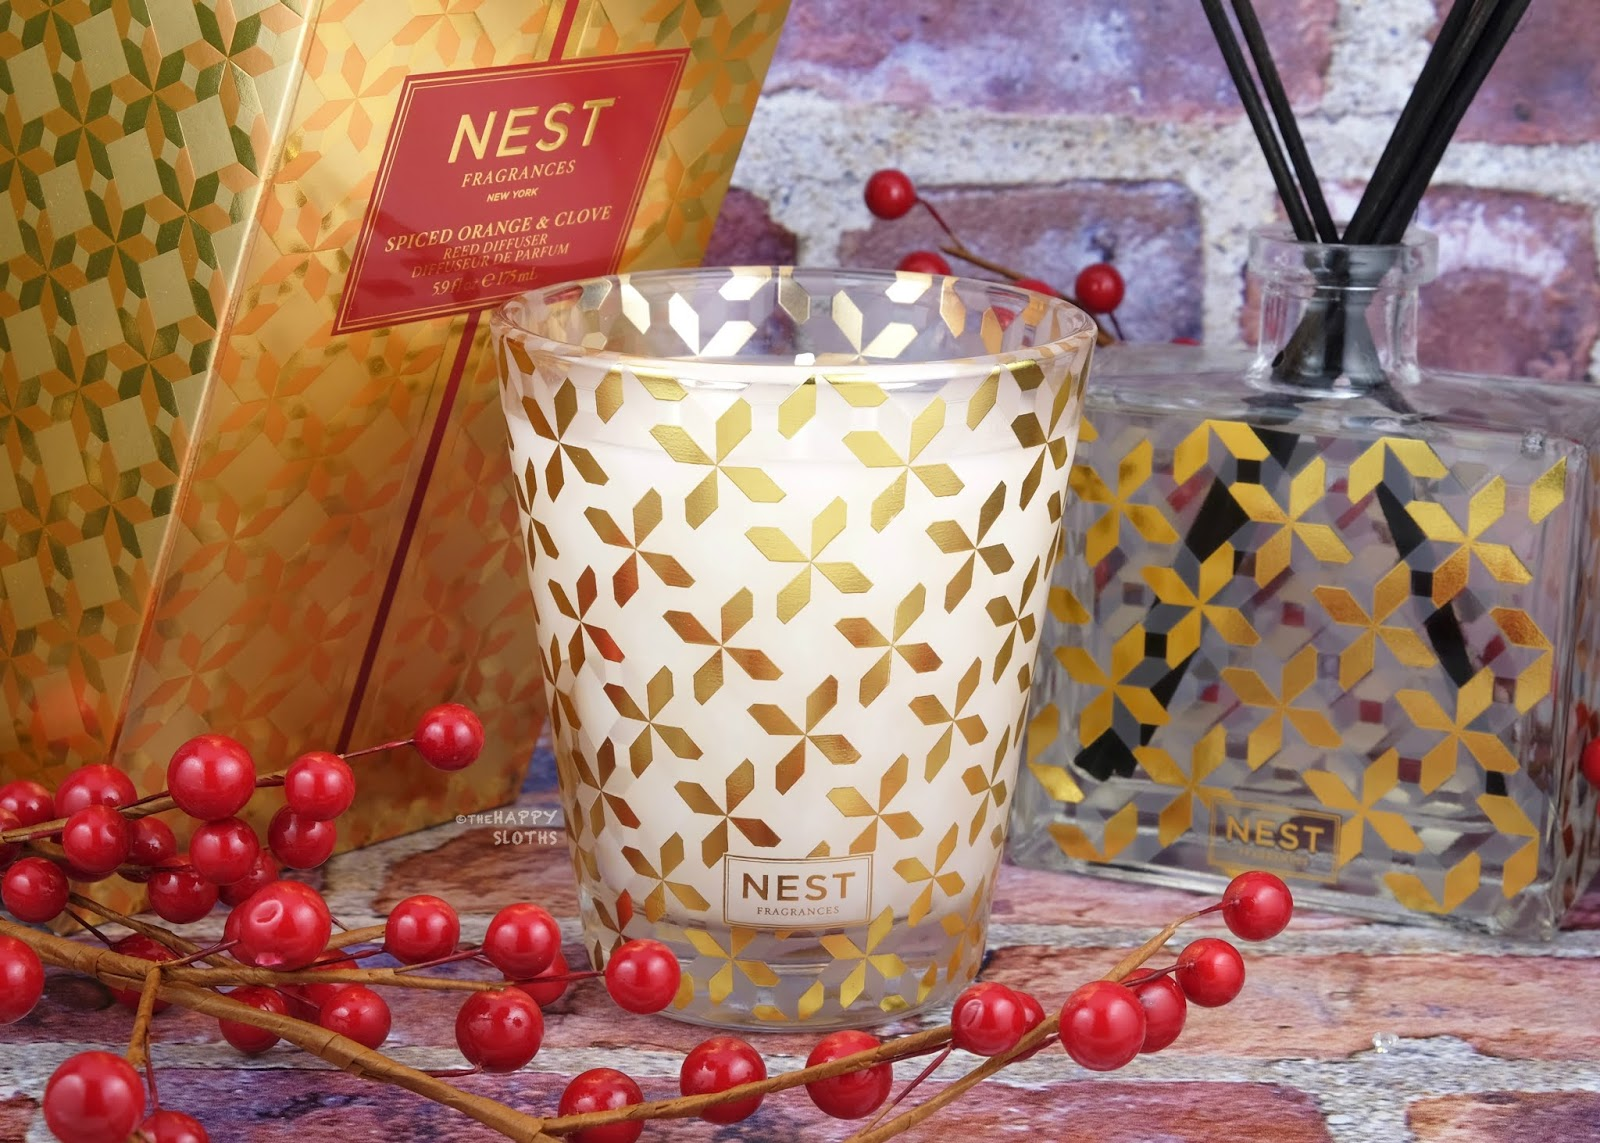 NEST Fragrances | Holiday 2019 Spiced Orange & Clove Scented Candle: Review